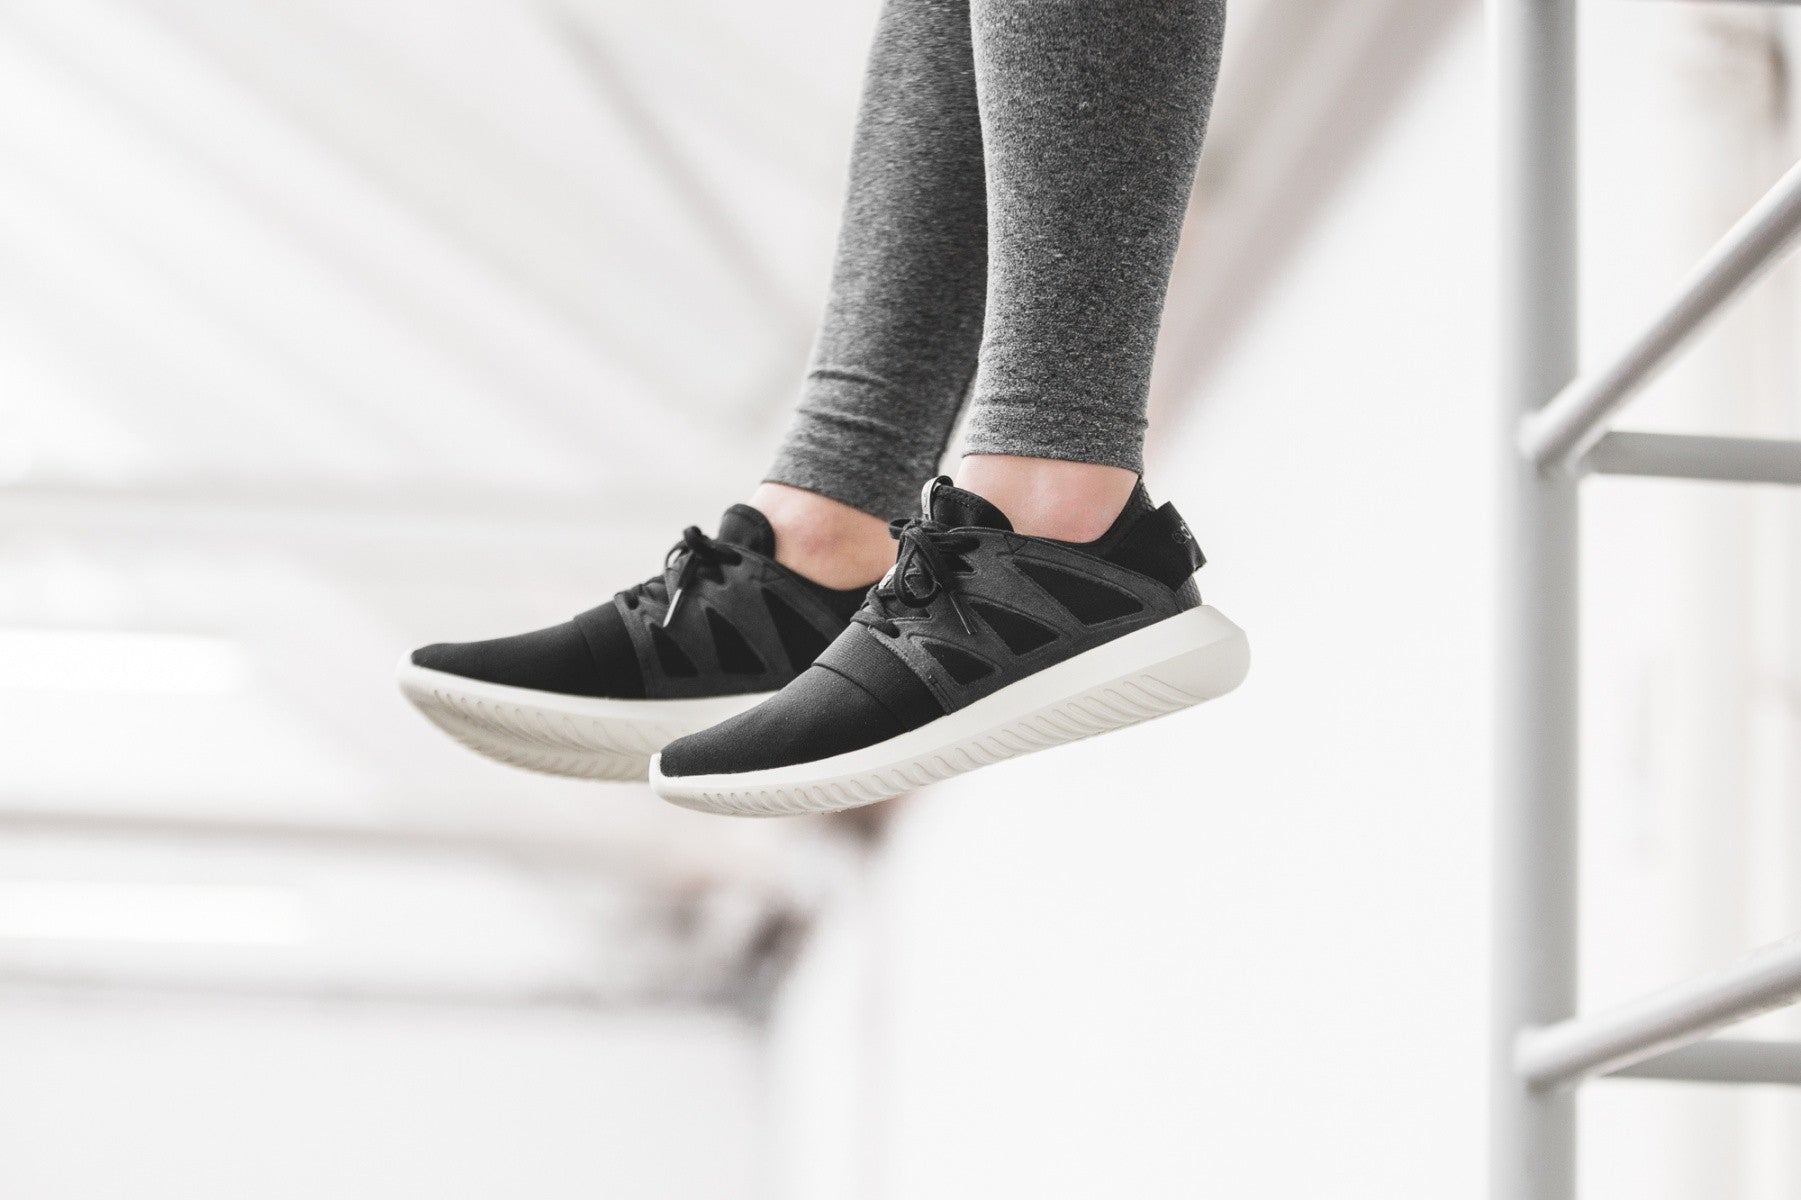 Tubular Defiant Shoes adidas Indonesia